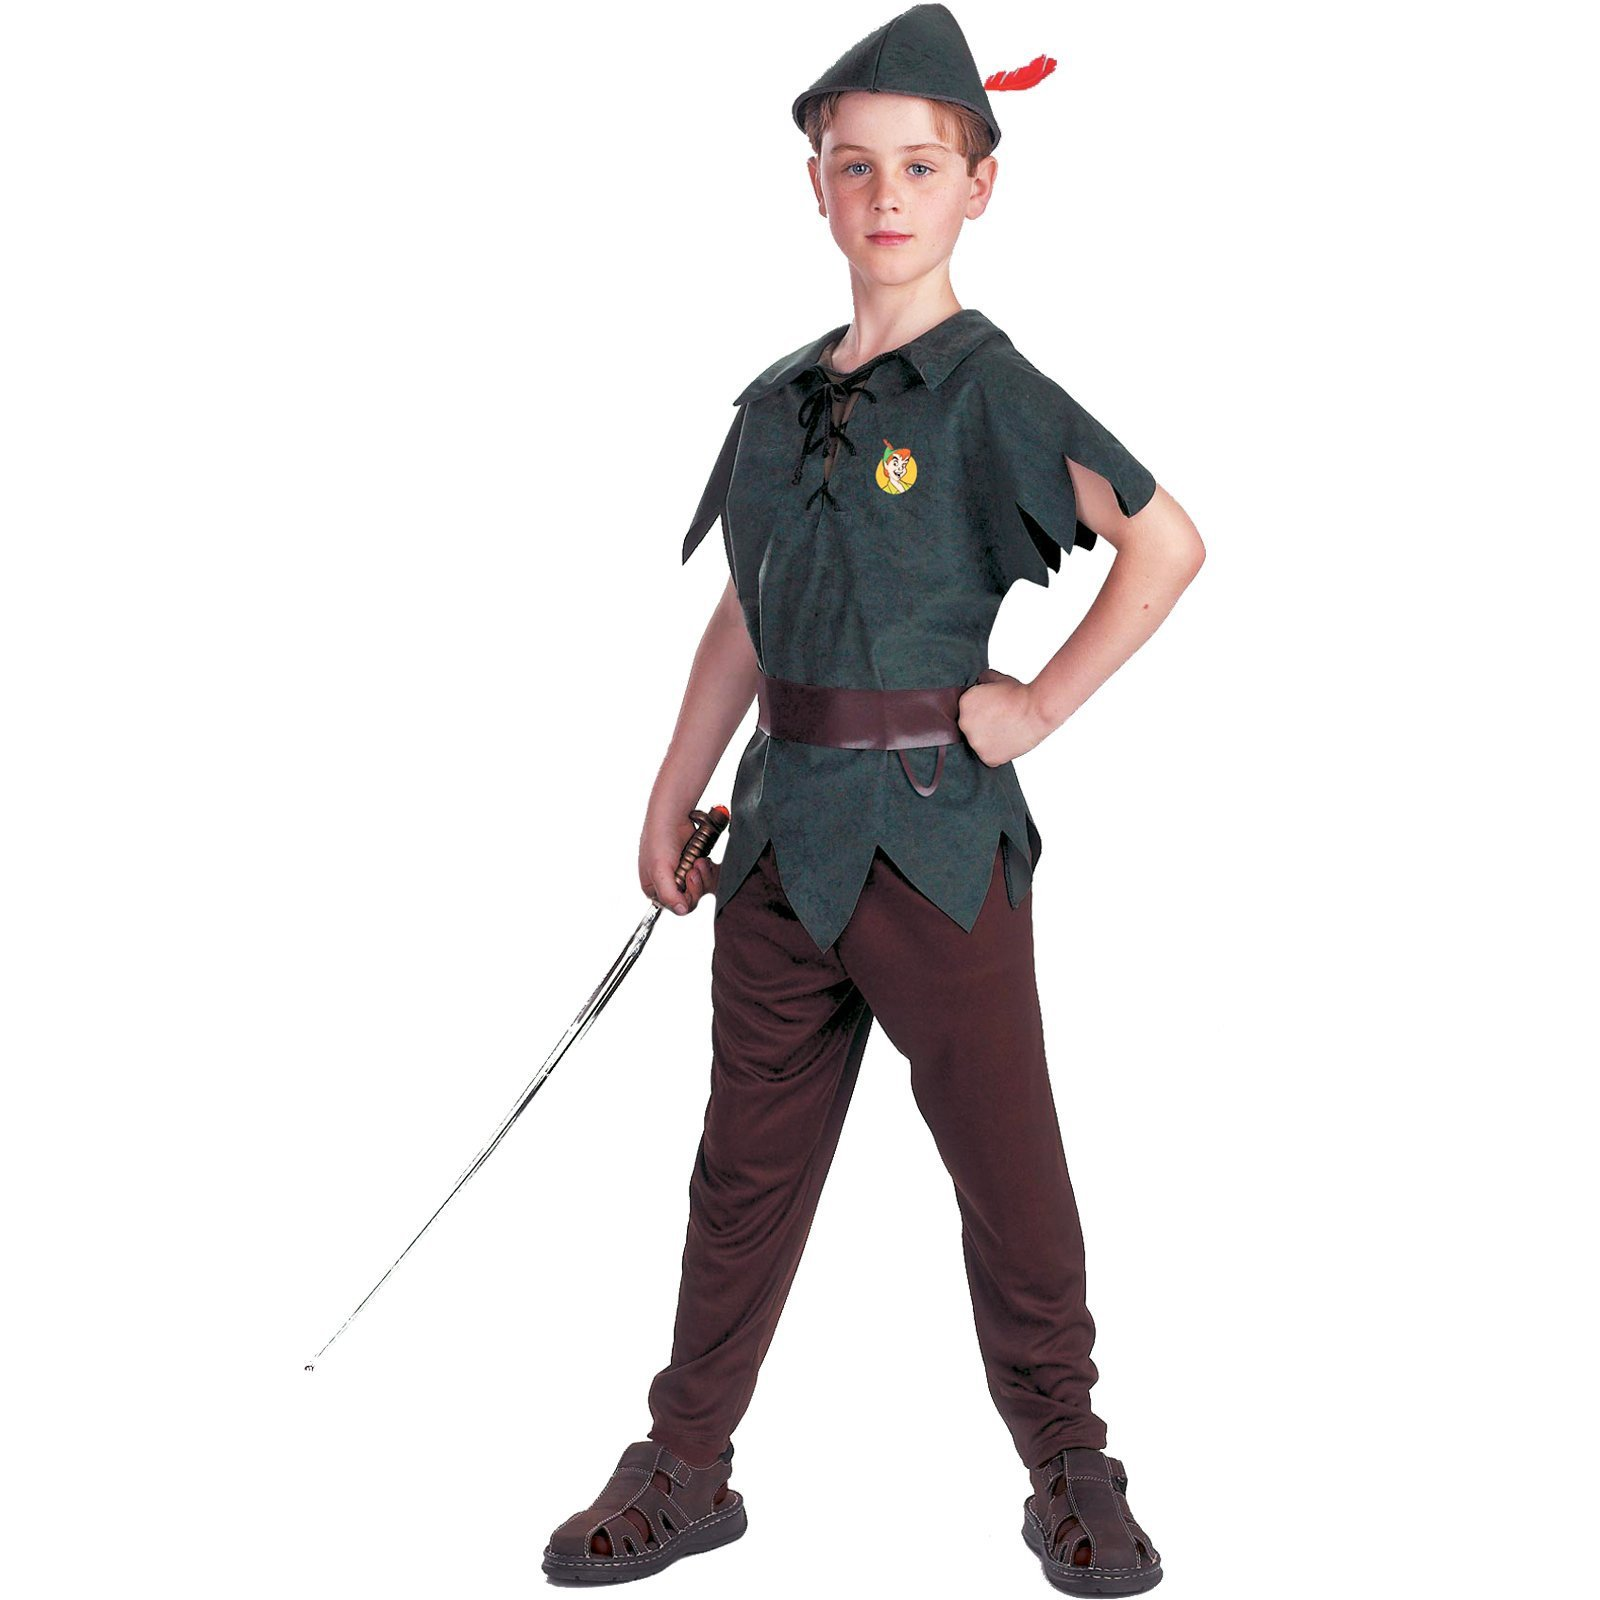 Disguise Peter Pan Disney Toddler / Child Costume Green 41463 by Disguise